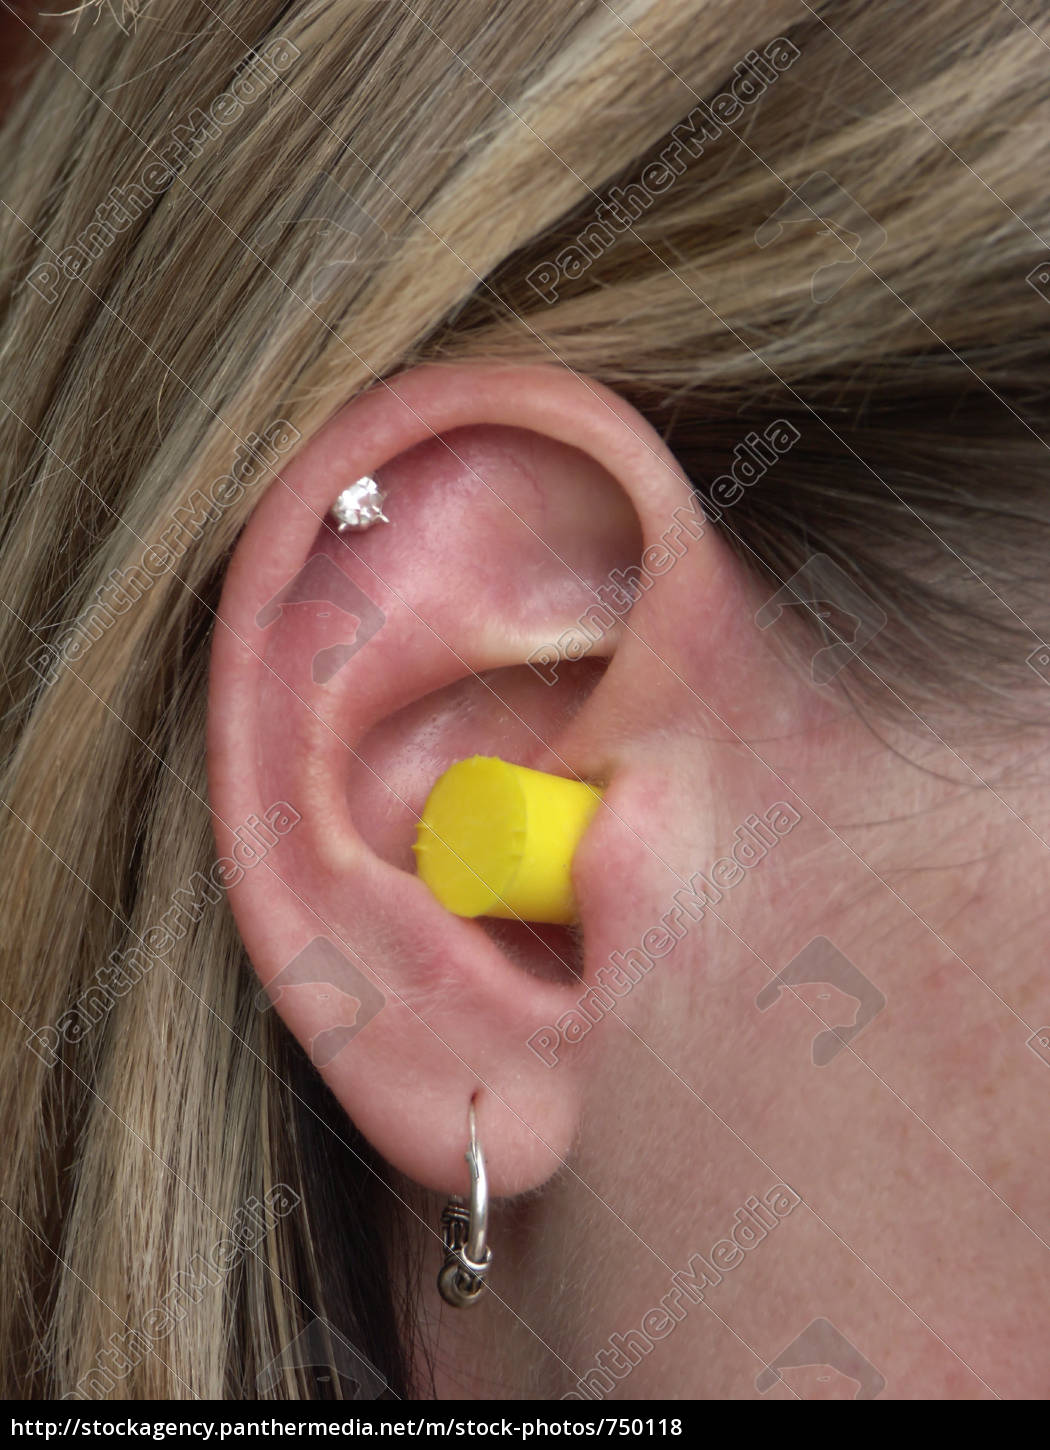 hearing, protection - 750118